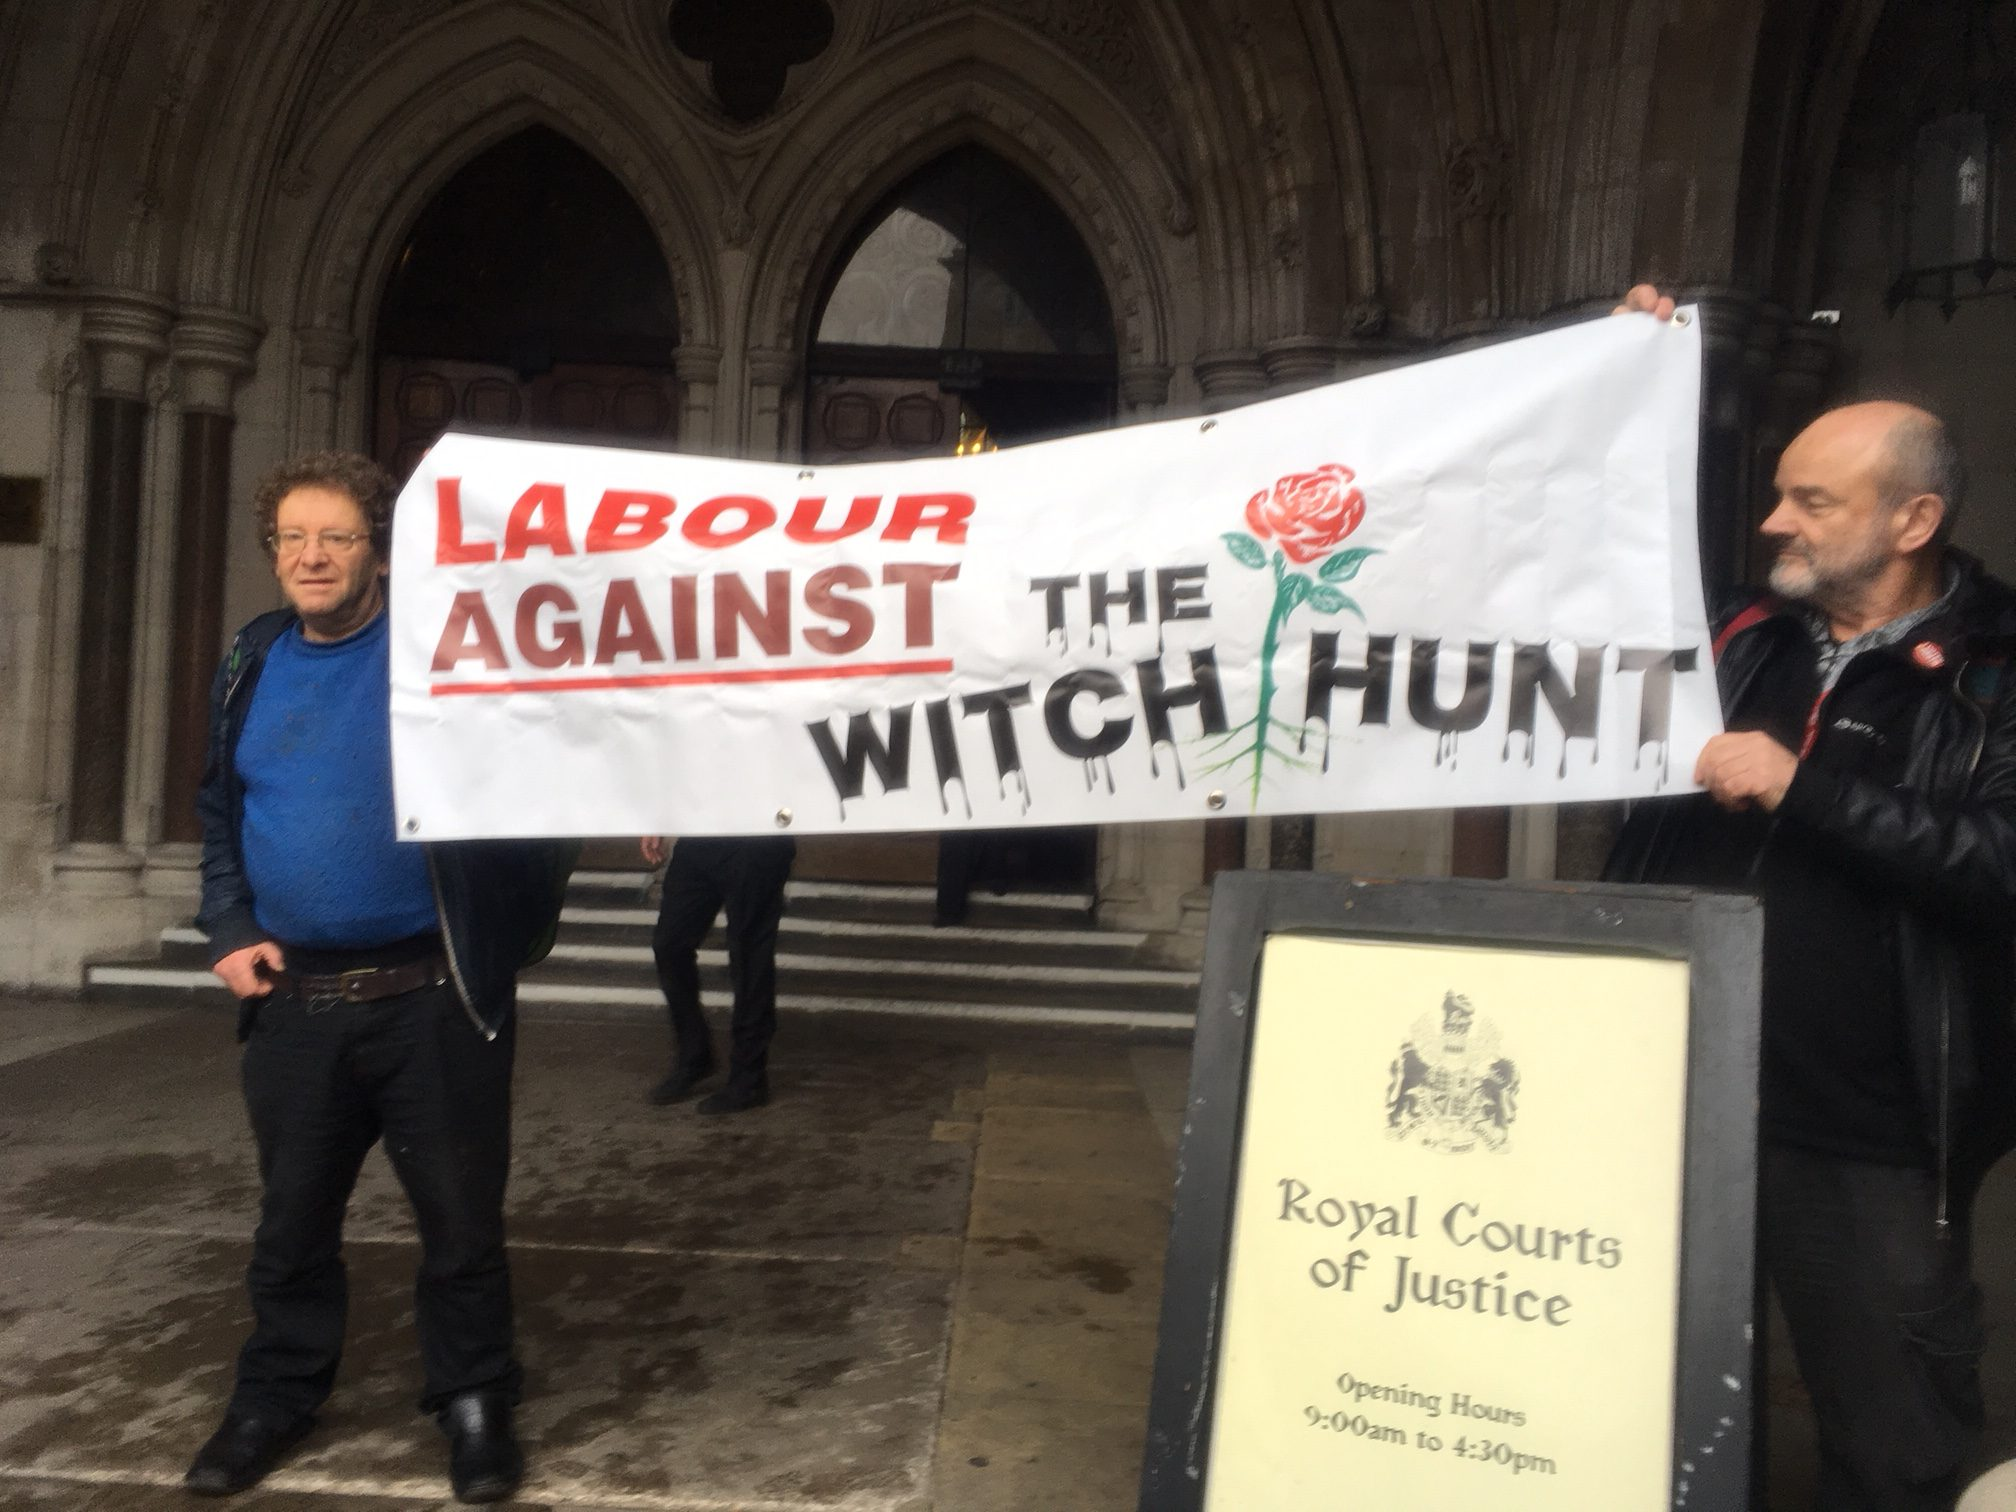 high court – Labour against the witch-hunt